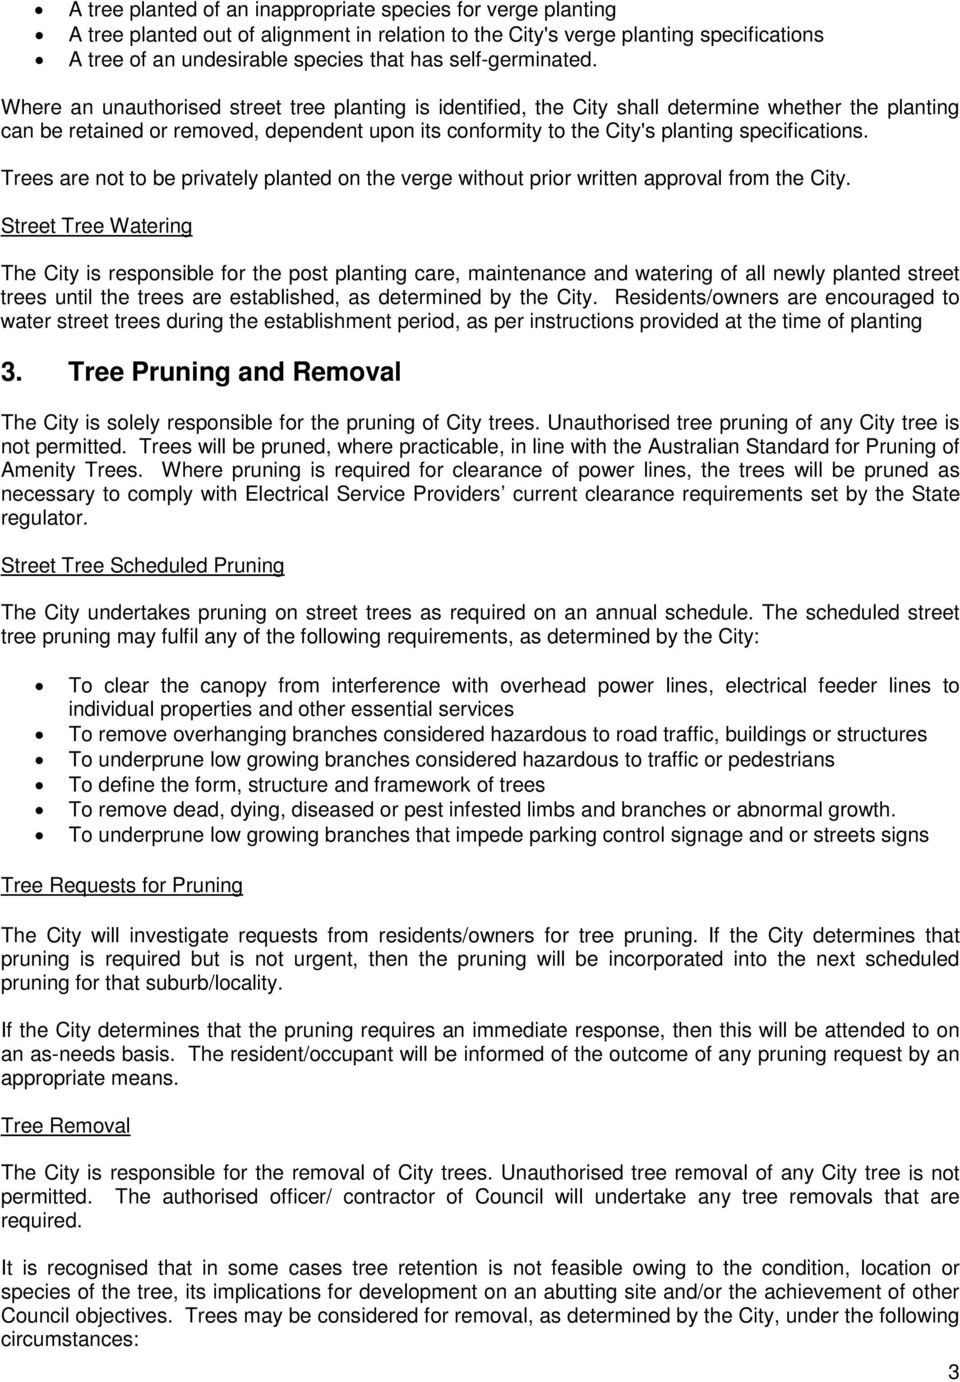 Where an unauthorised street tree planting is identified, the City shall determine whether the planting can be retained or removed, dependent upon its conformity to the City's planting specifications.